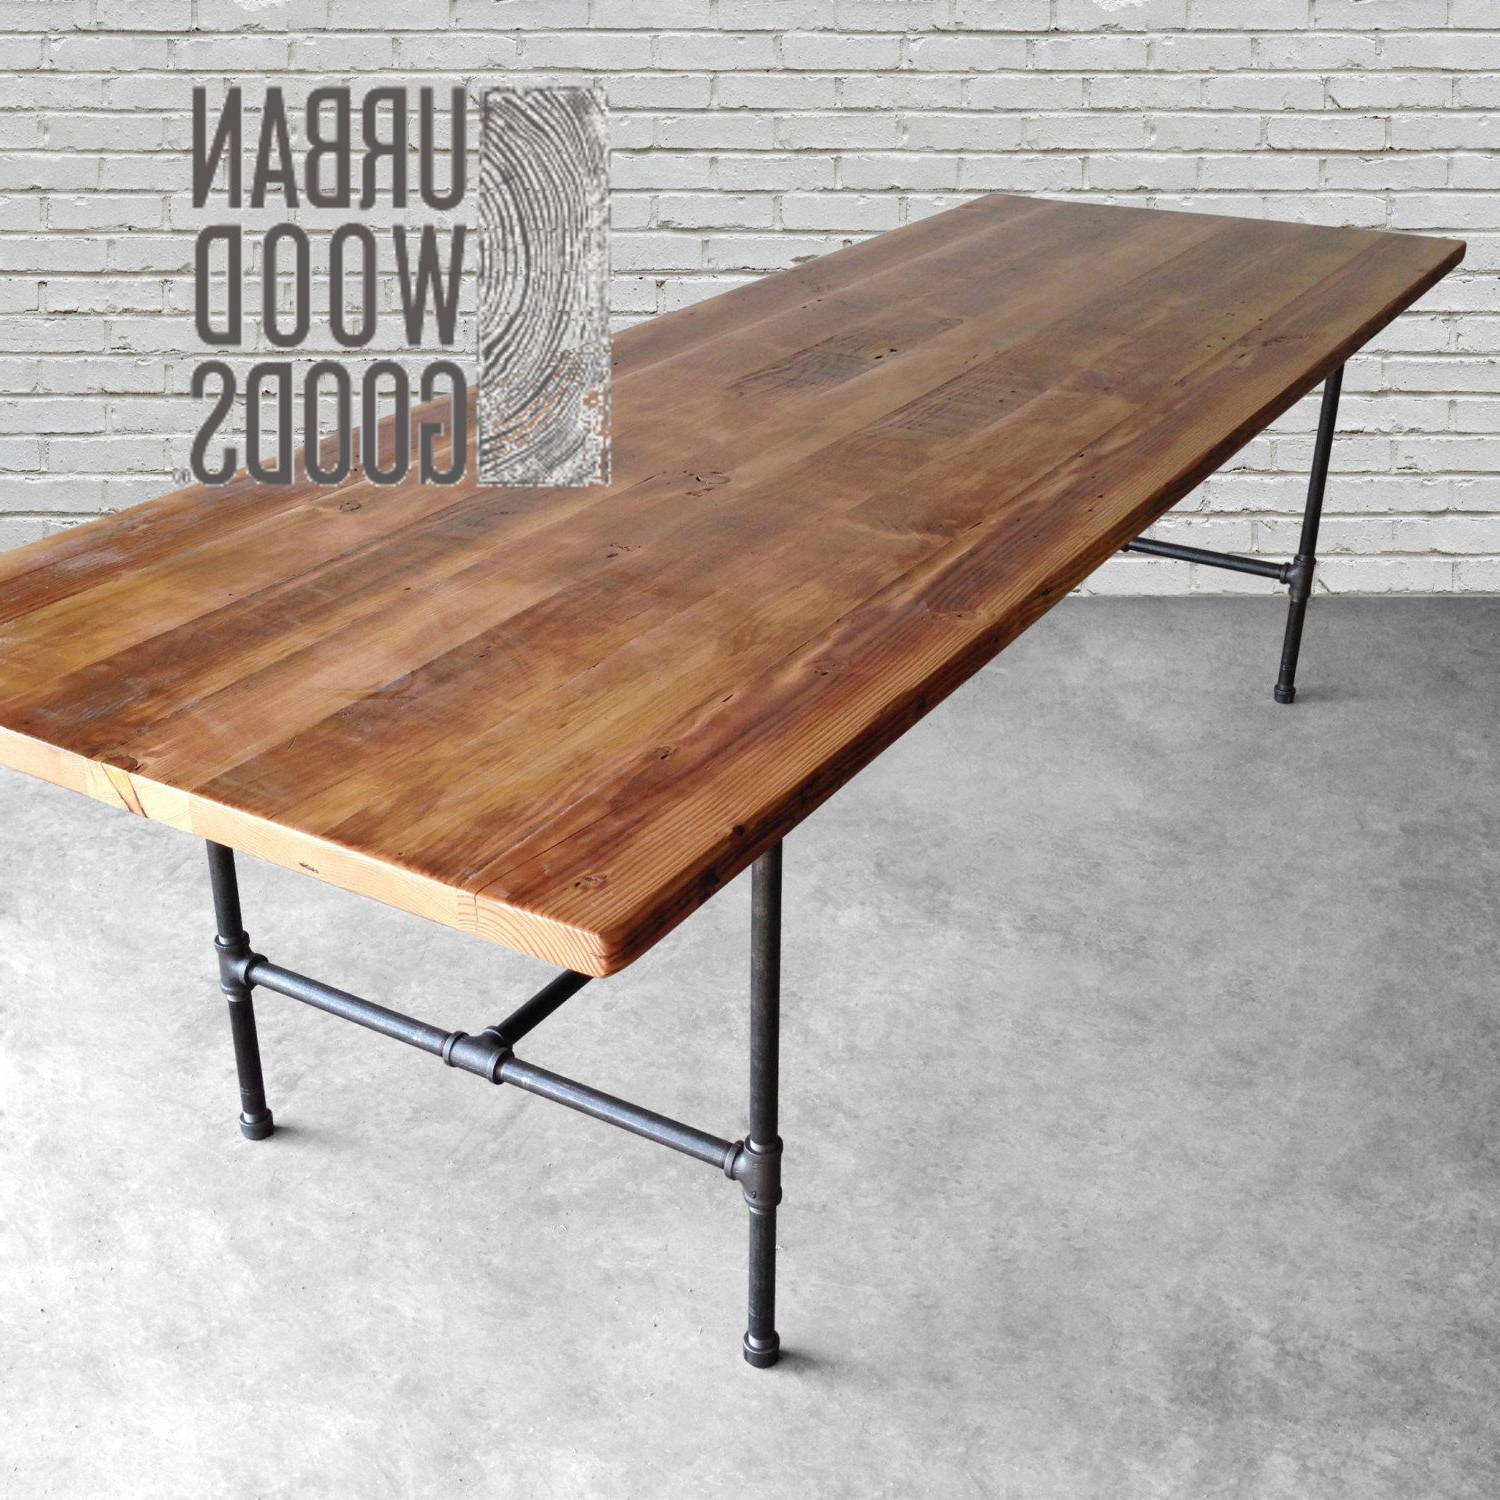 Iron Wood Dining Tables With Metal Legs within Most Current Pin On Store